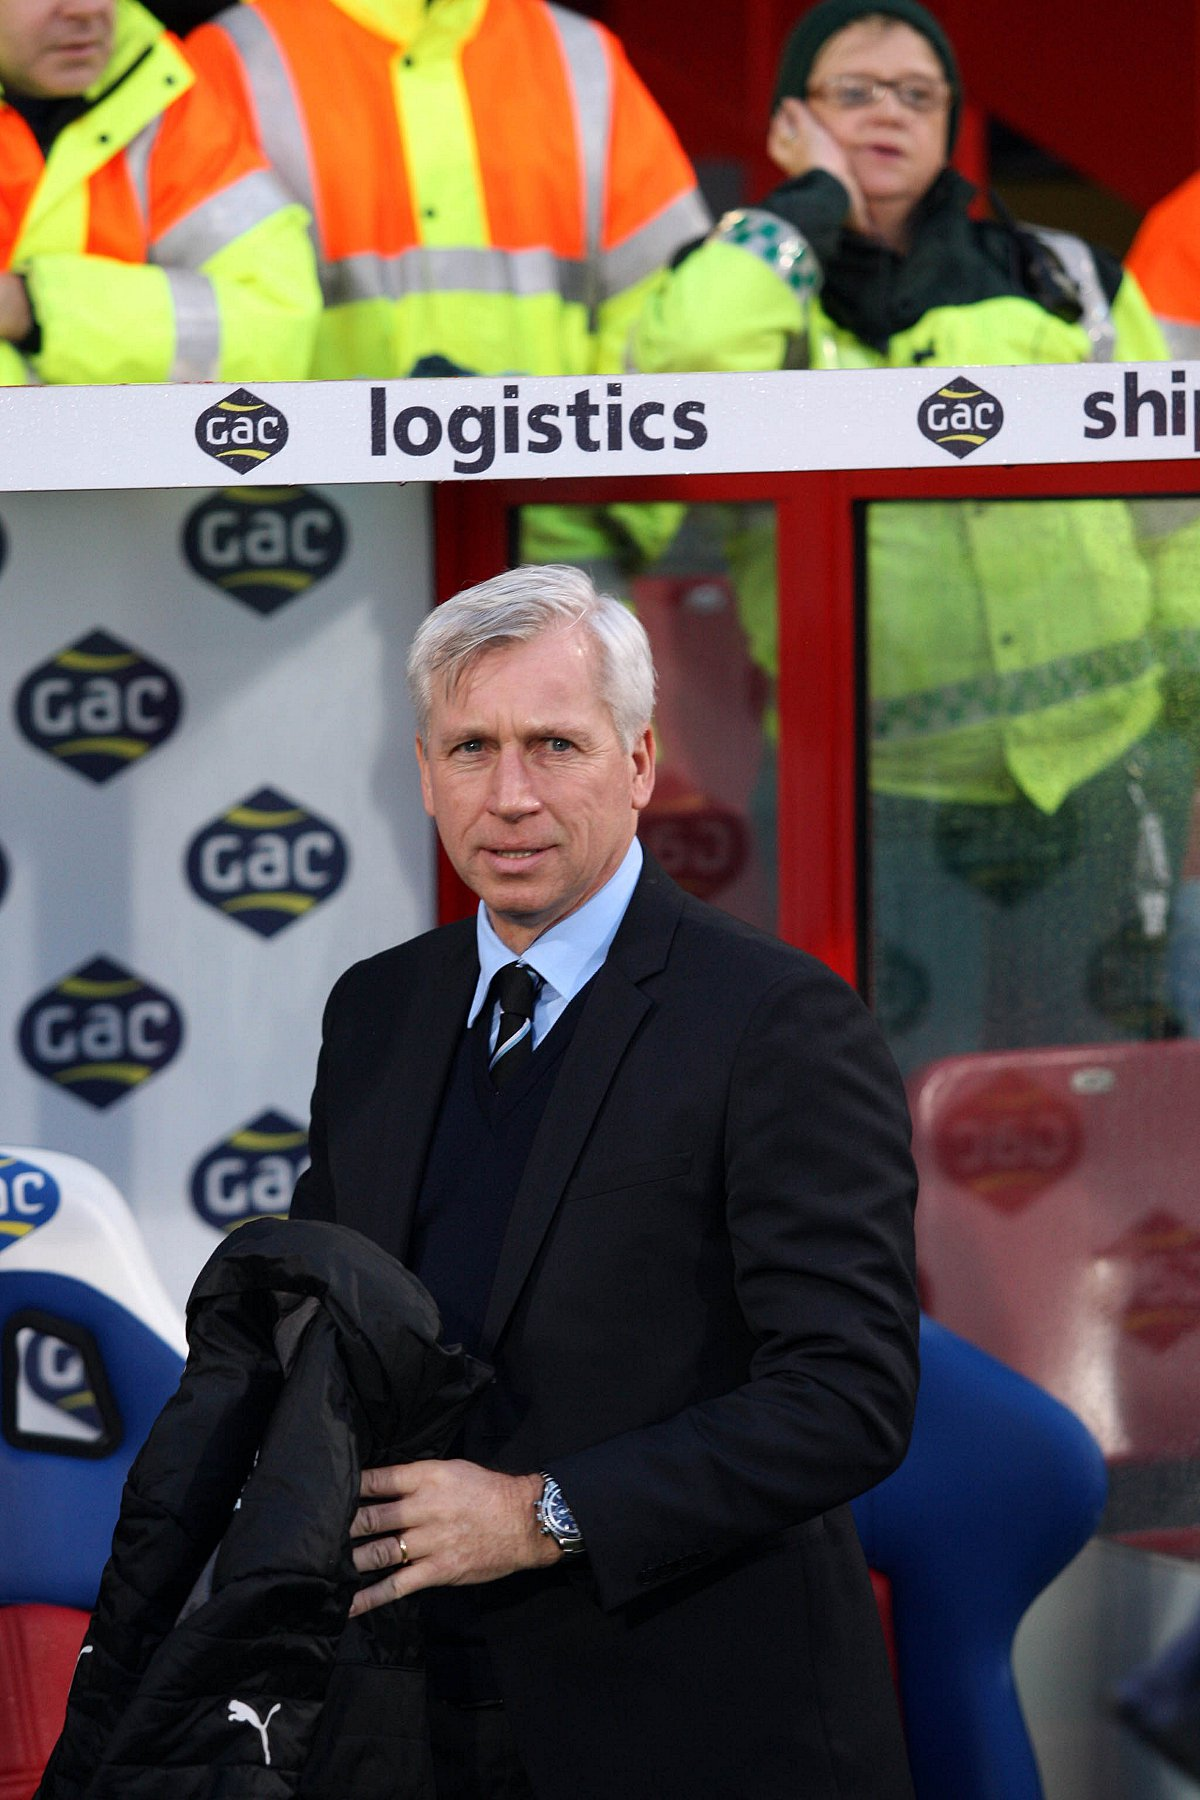 Coming back? Depending on what you read, Alan Pardew is due a return to Selhurst Park - utter rubbish